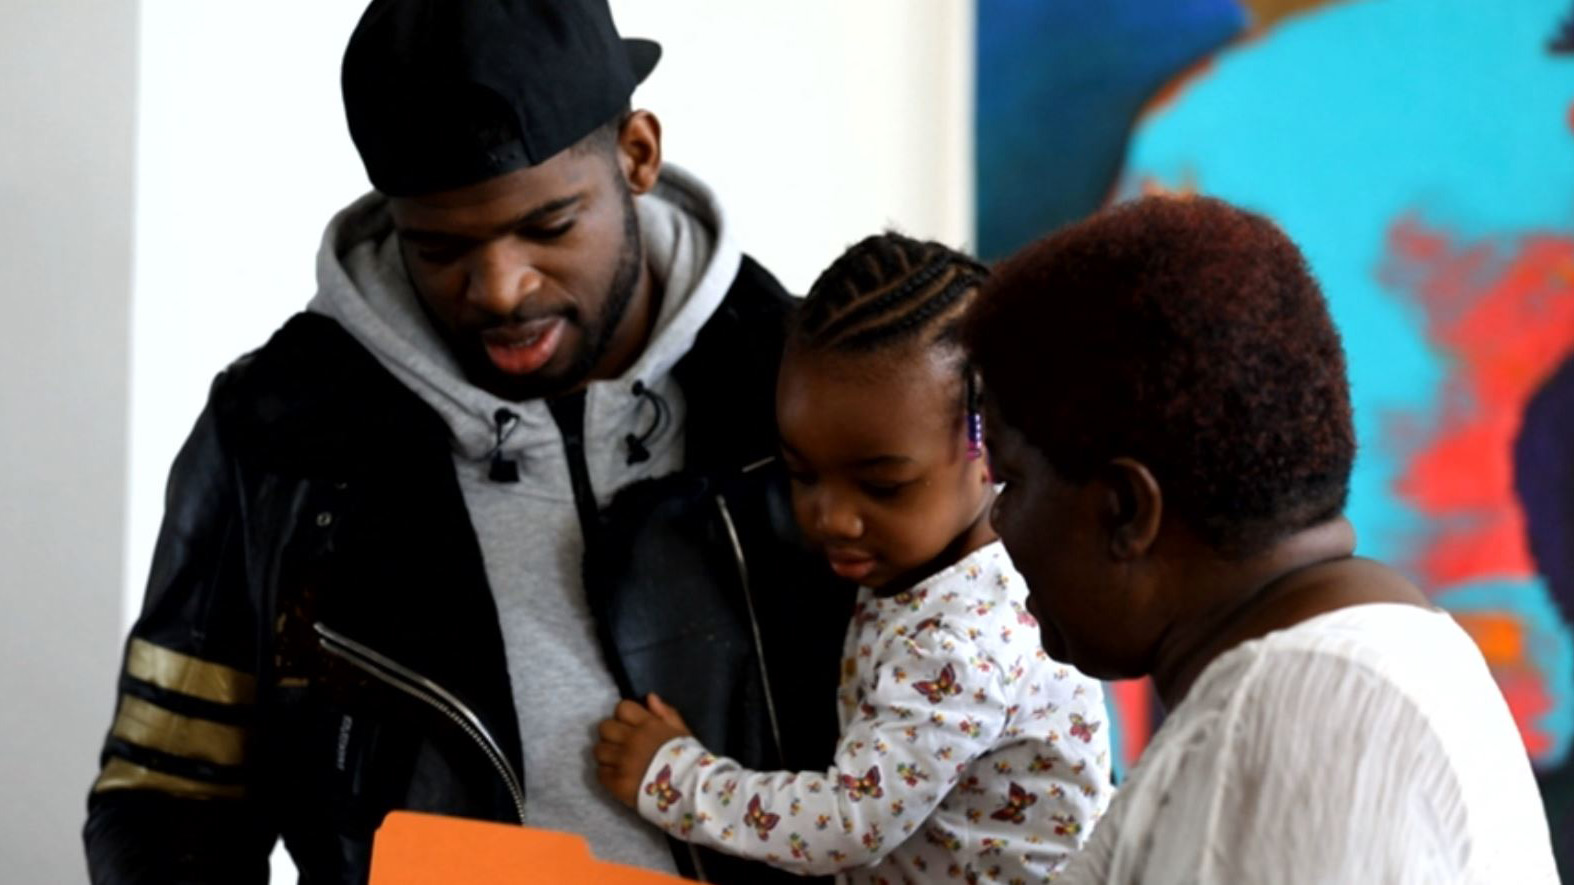 The P.K. Project: Preview: P.K. Subban arrives with his family